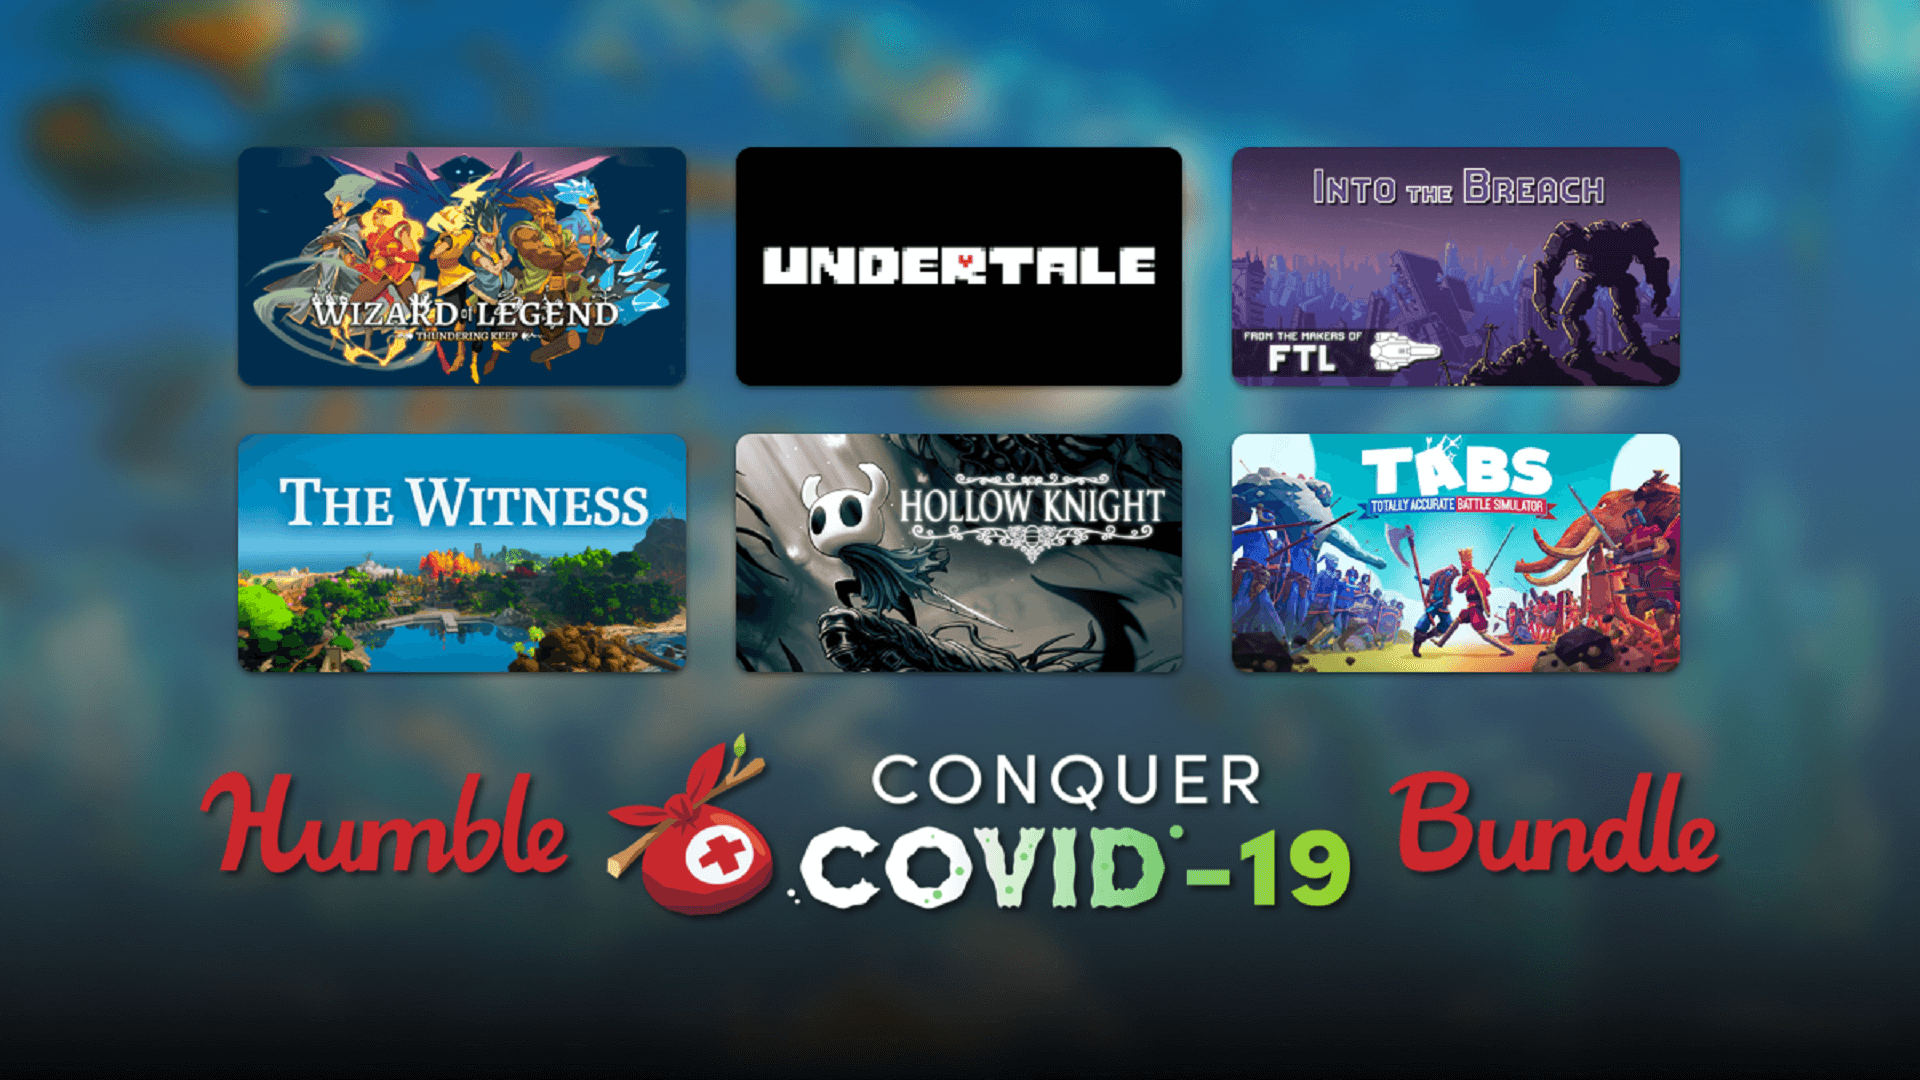 Humble Conquer COVID-19 Bundle Is Now Available